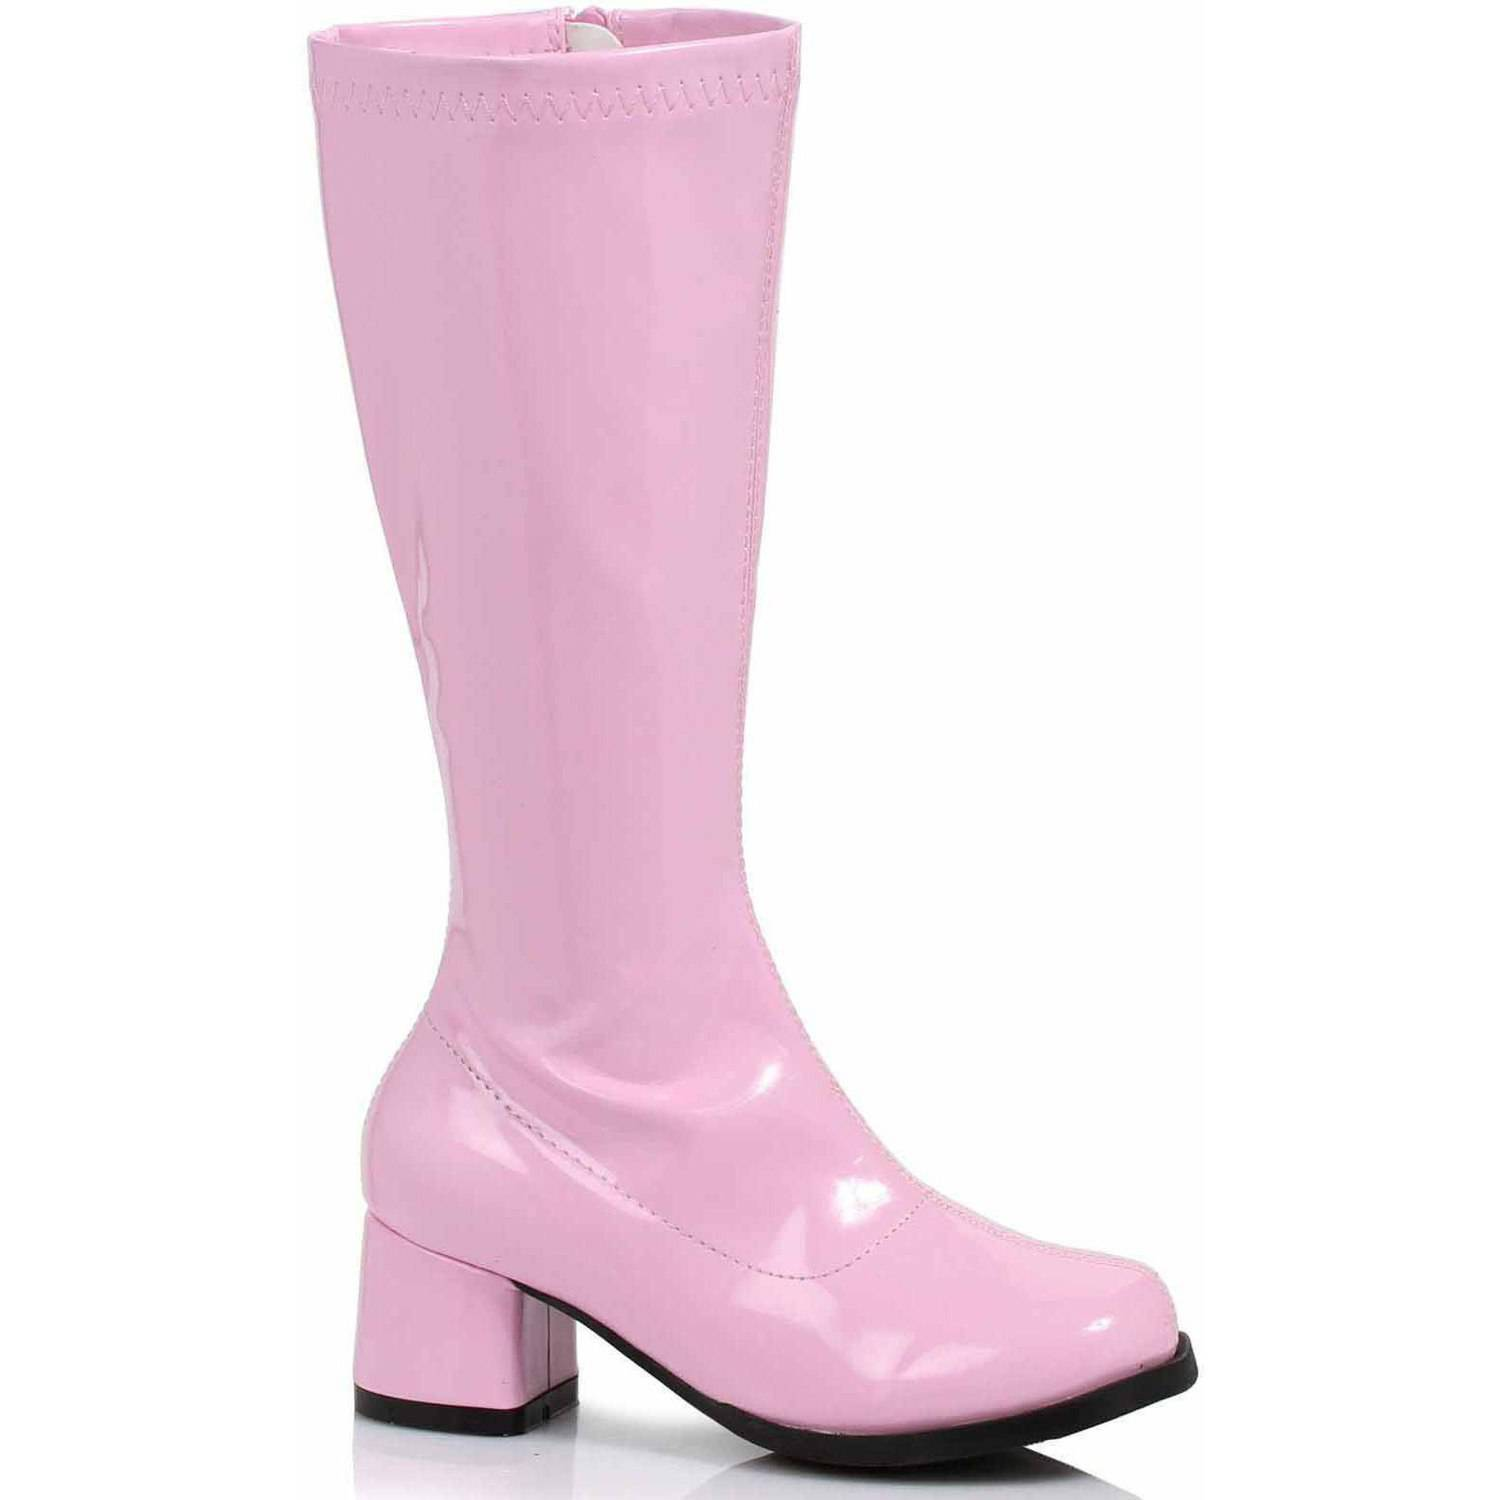 Dora Pink Boots Girls' Child Halloween Costume Accessory by Generic